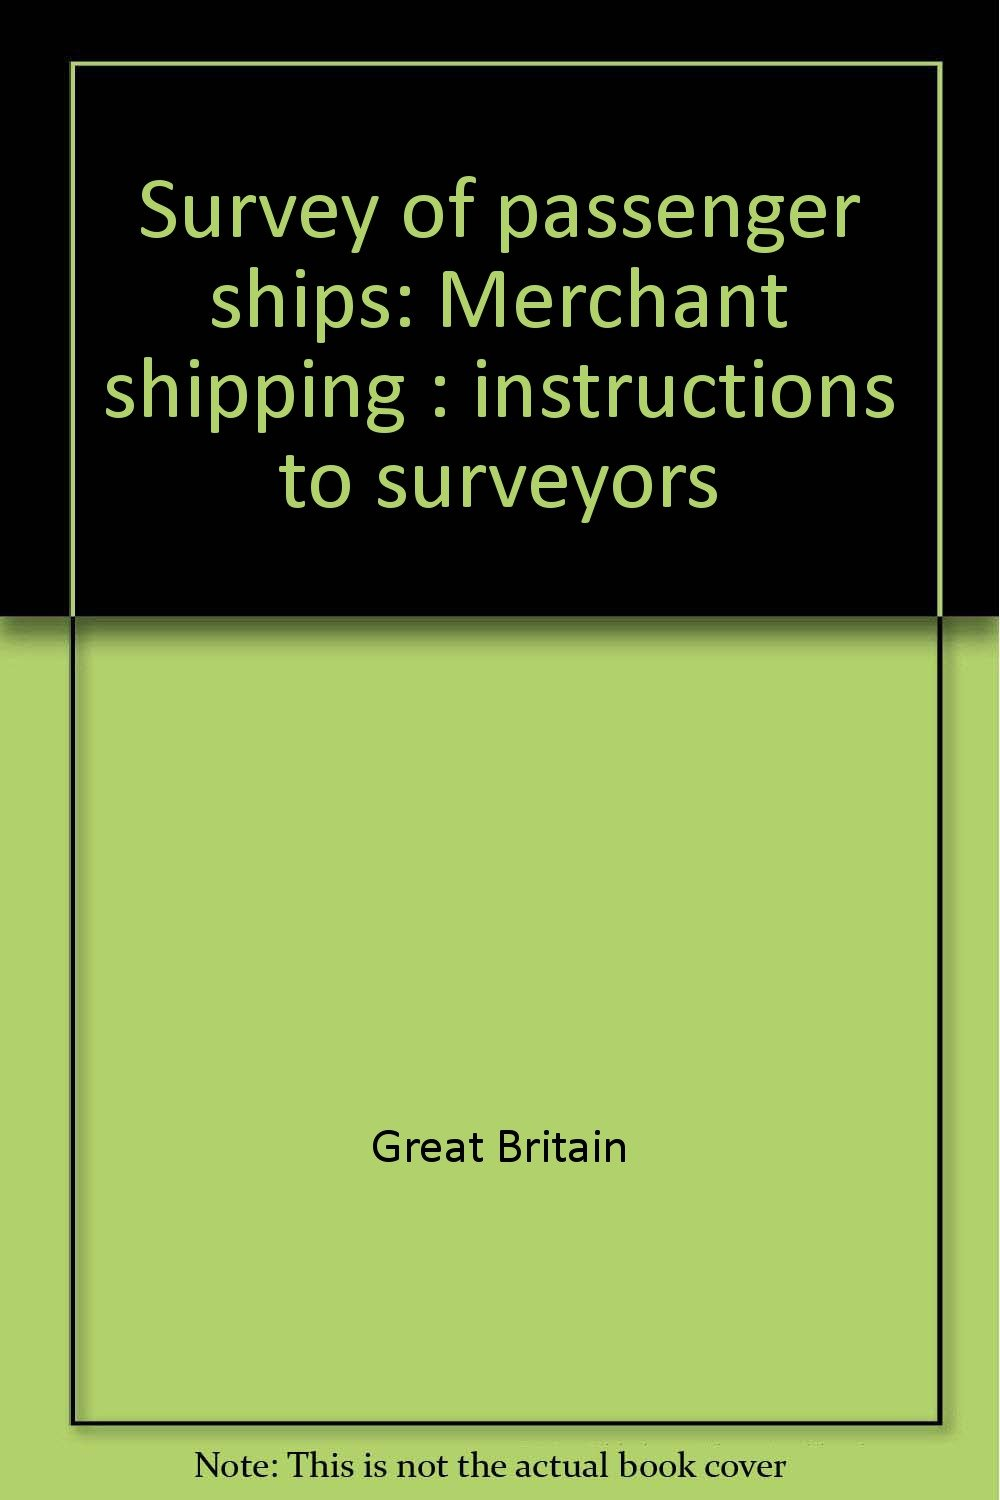 Survey of passenger ships: Merchant shipping : instructions to surveyors